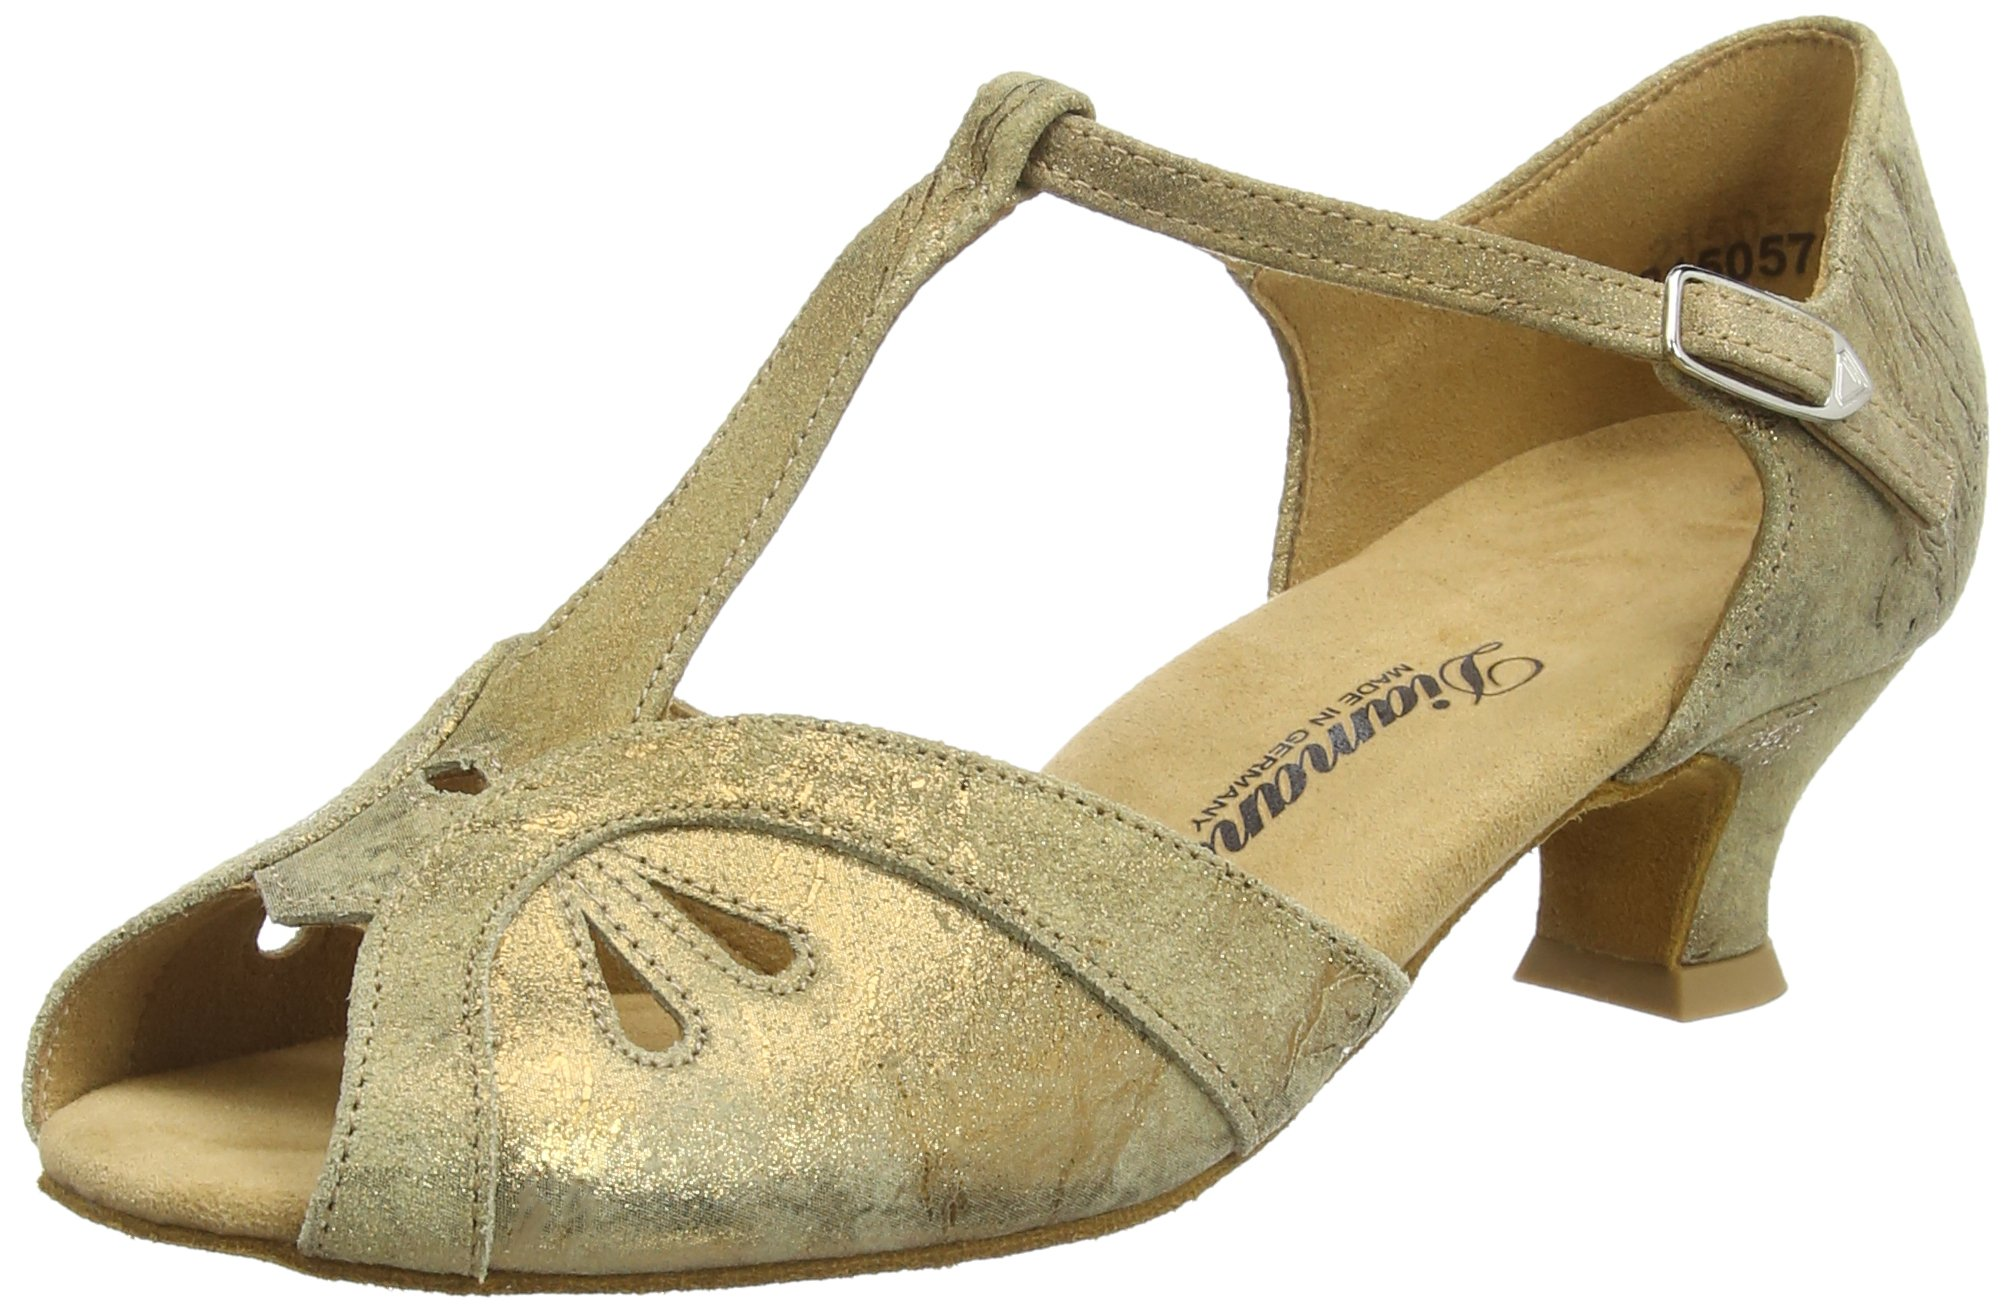 Diamant Womens Dance Shoes 019-011-311 Bronce Magic Leather 8B(M) US